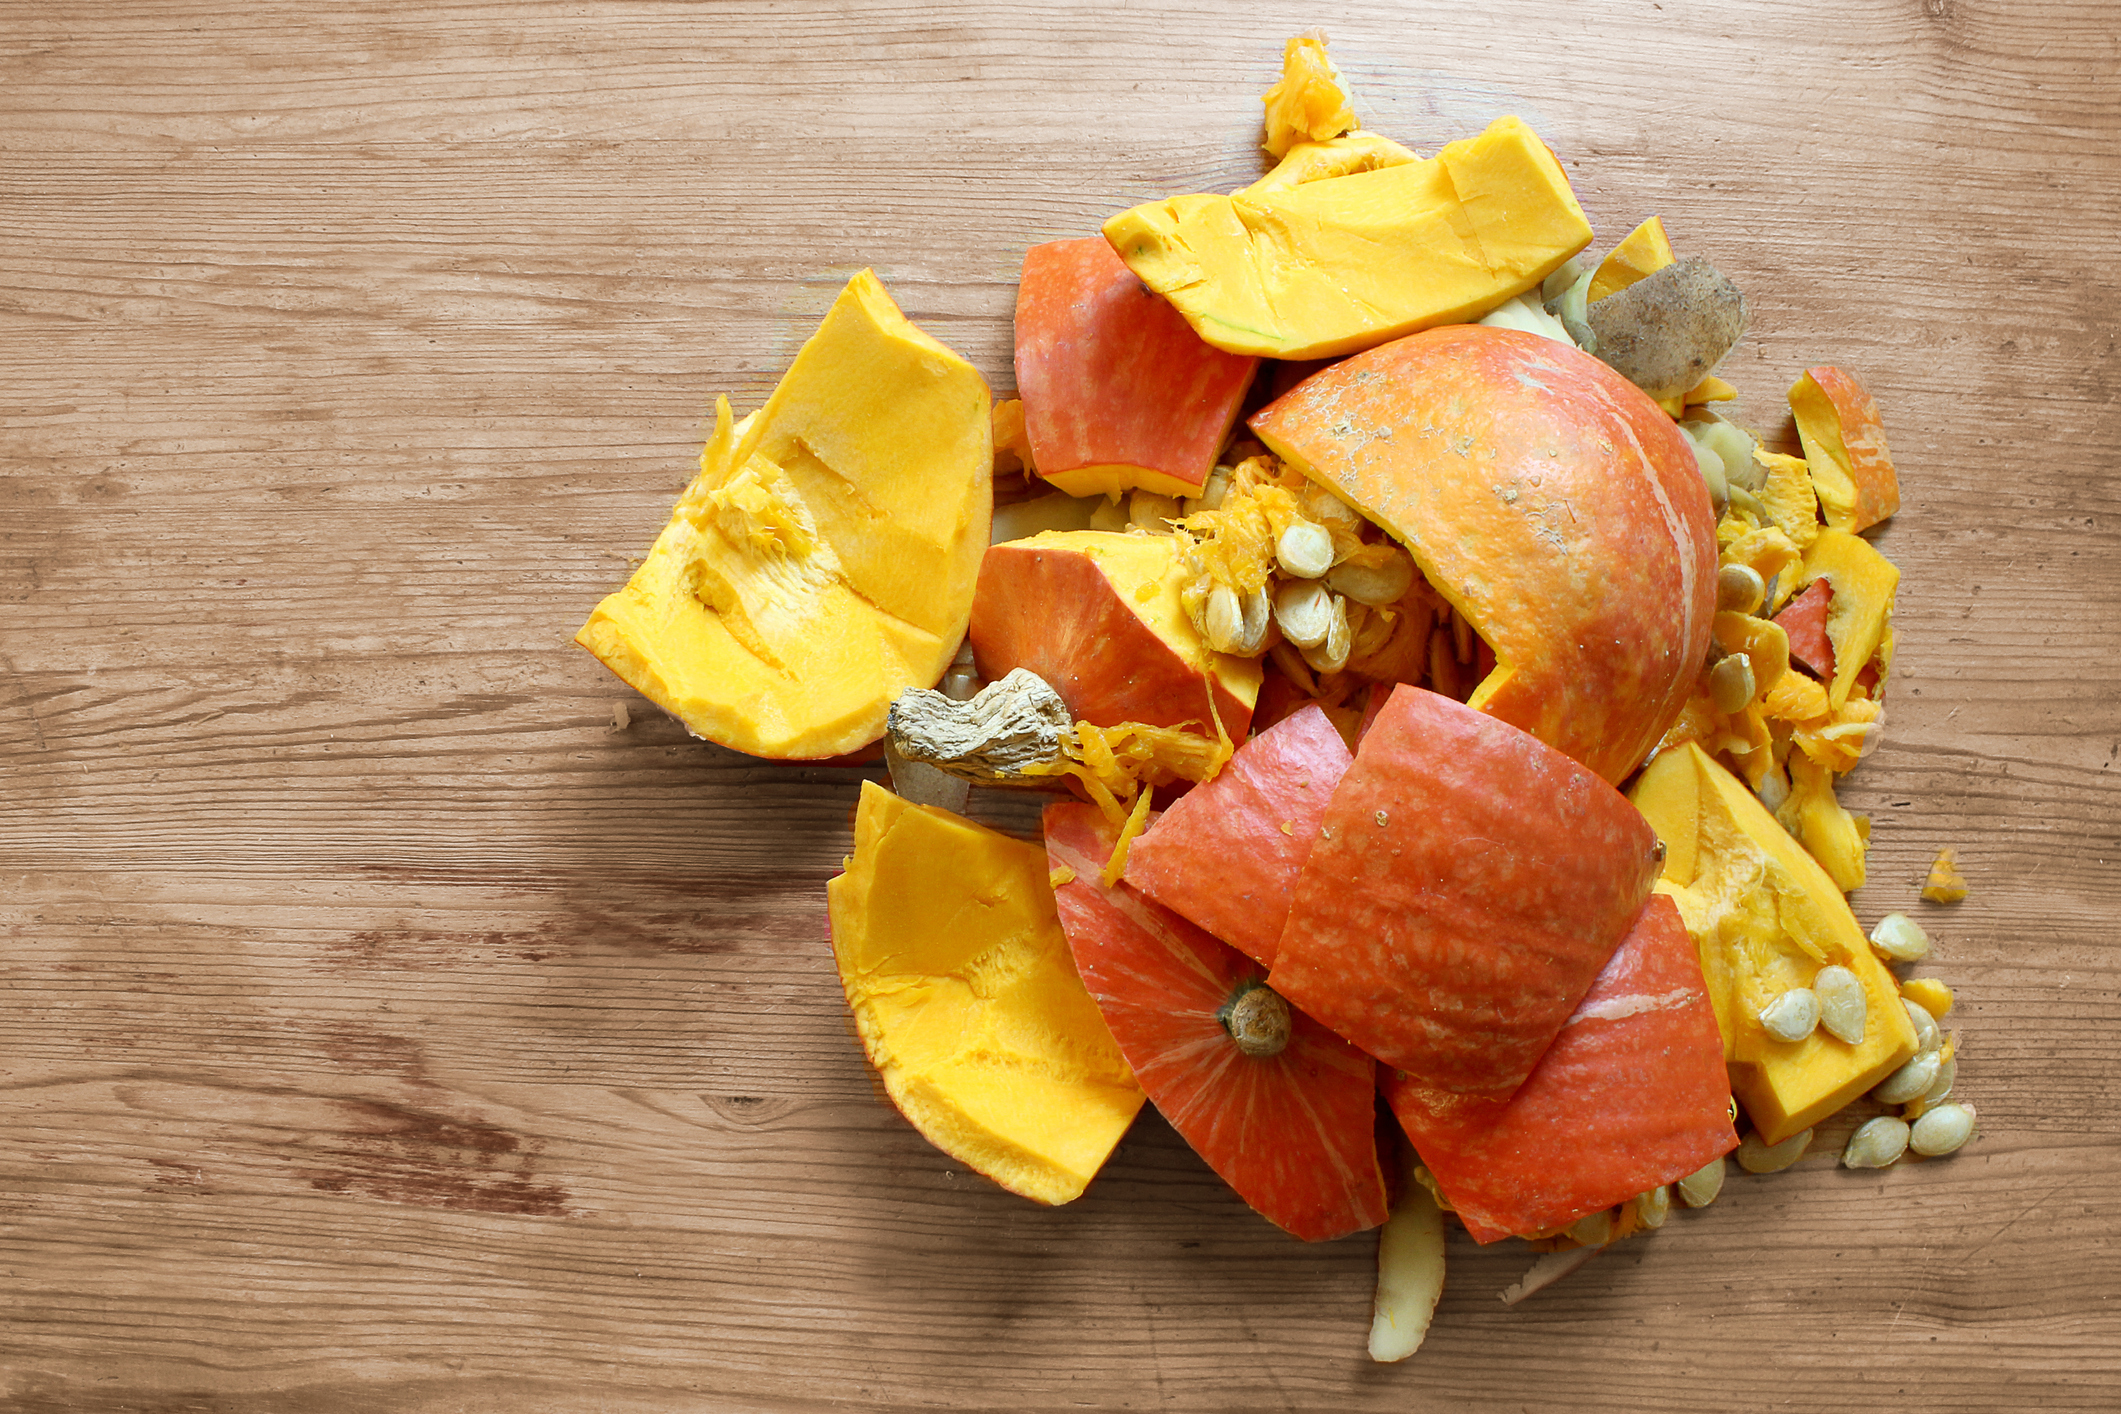 Smashed Pumpkin on a wooden table